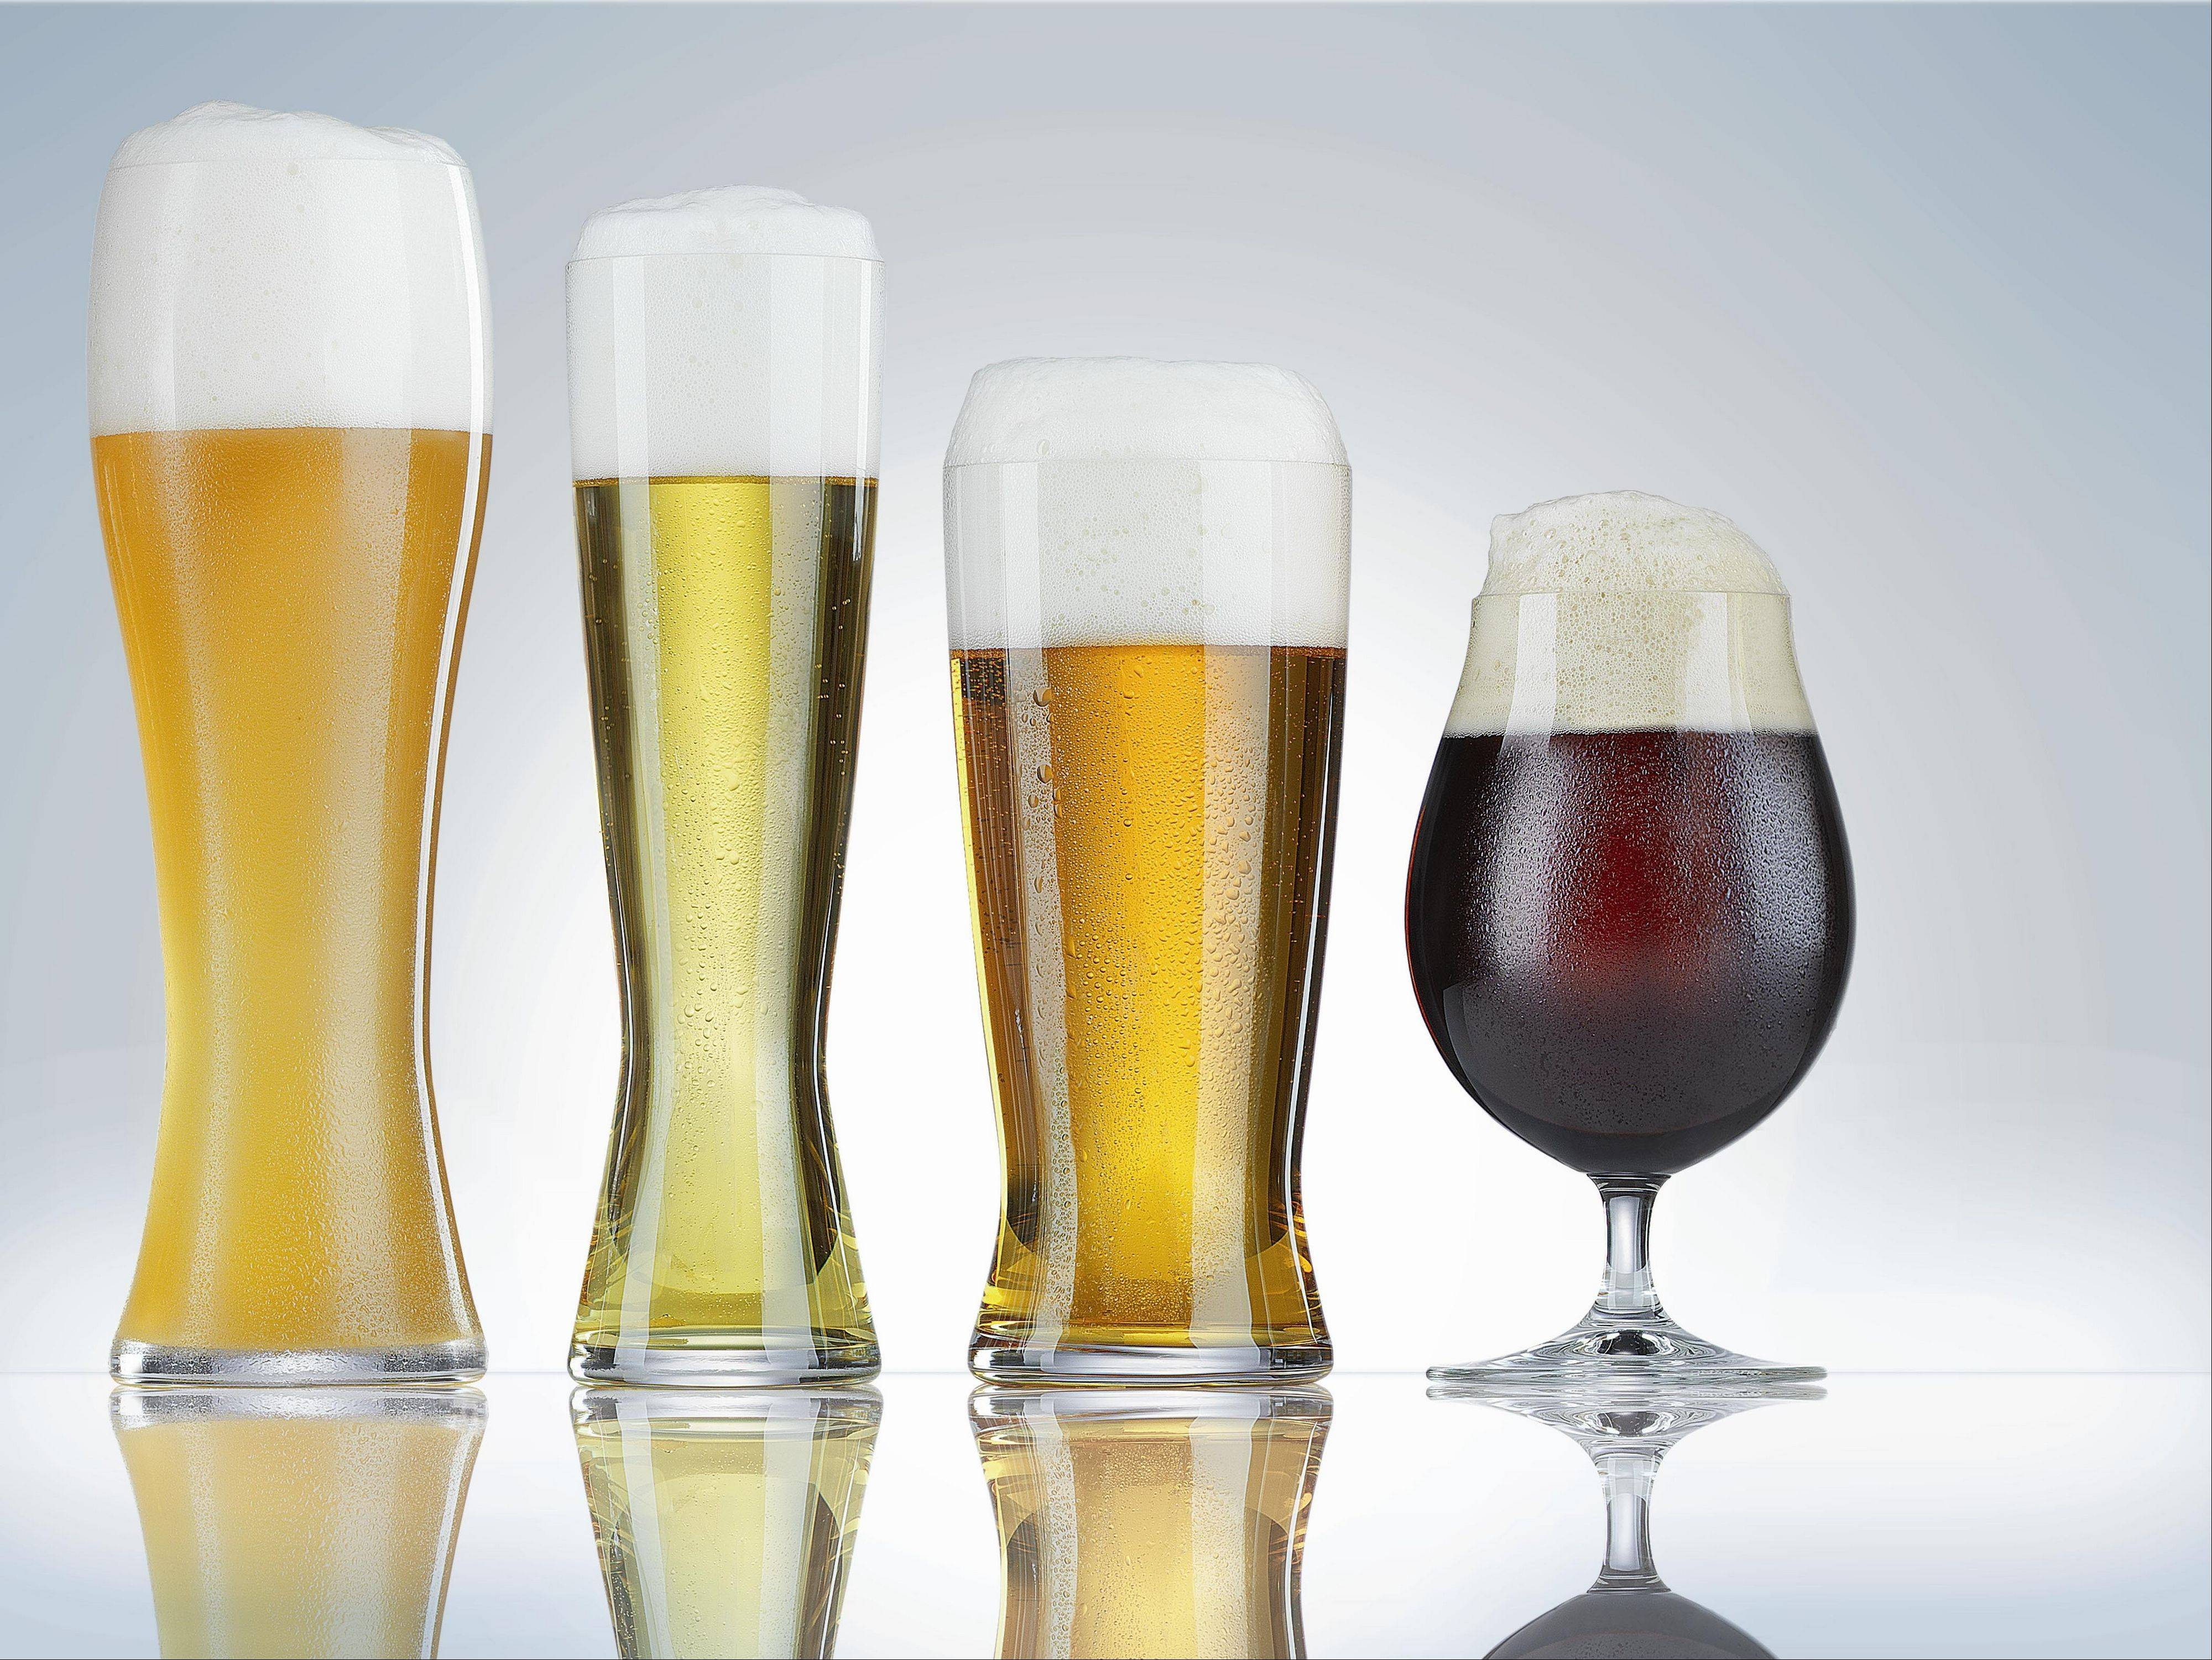 The right glass brings out the best in beer.